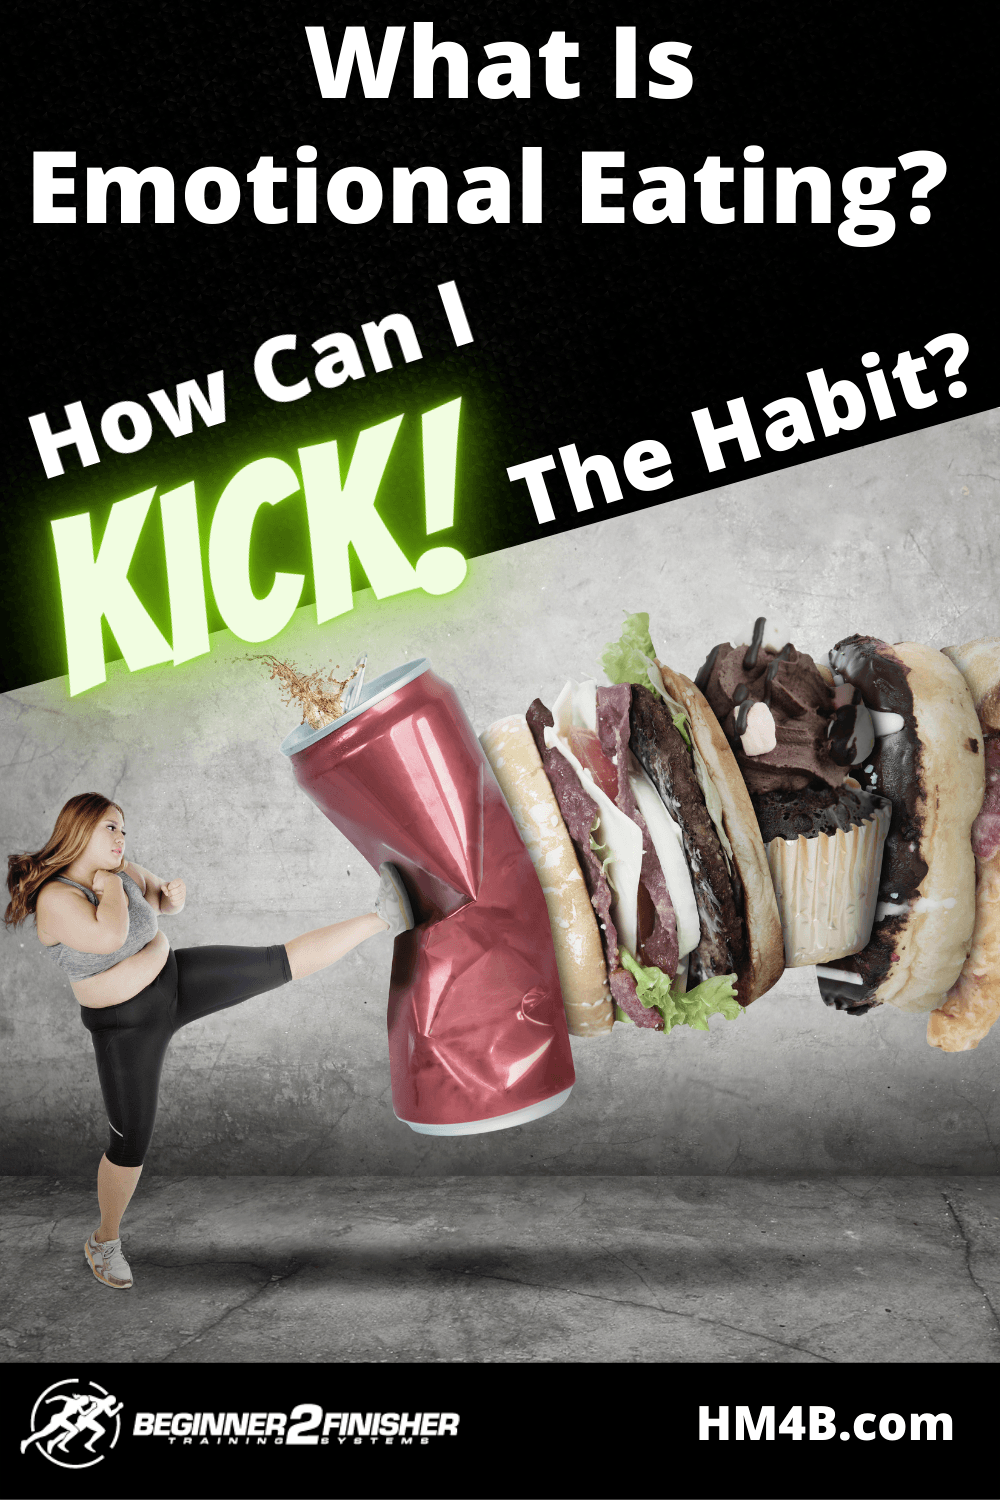 What Is Emotional Eating And How To Break The Habit?